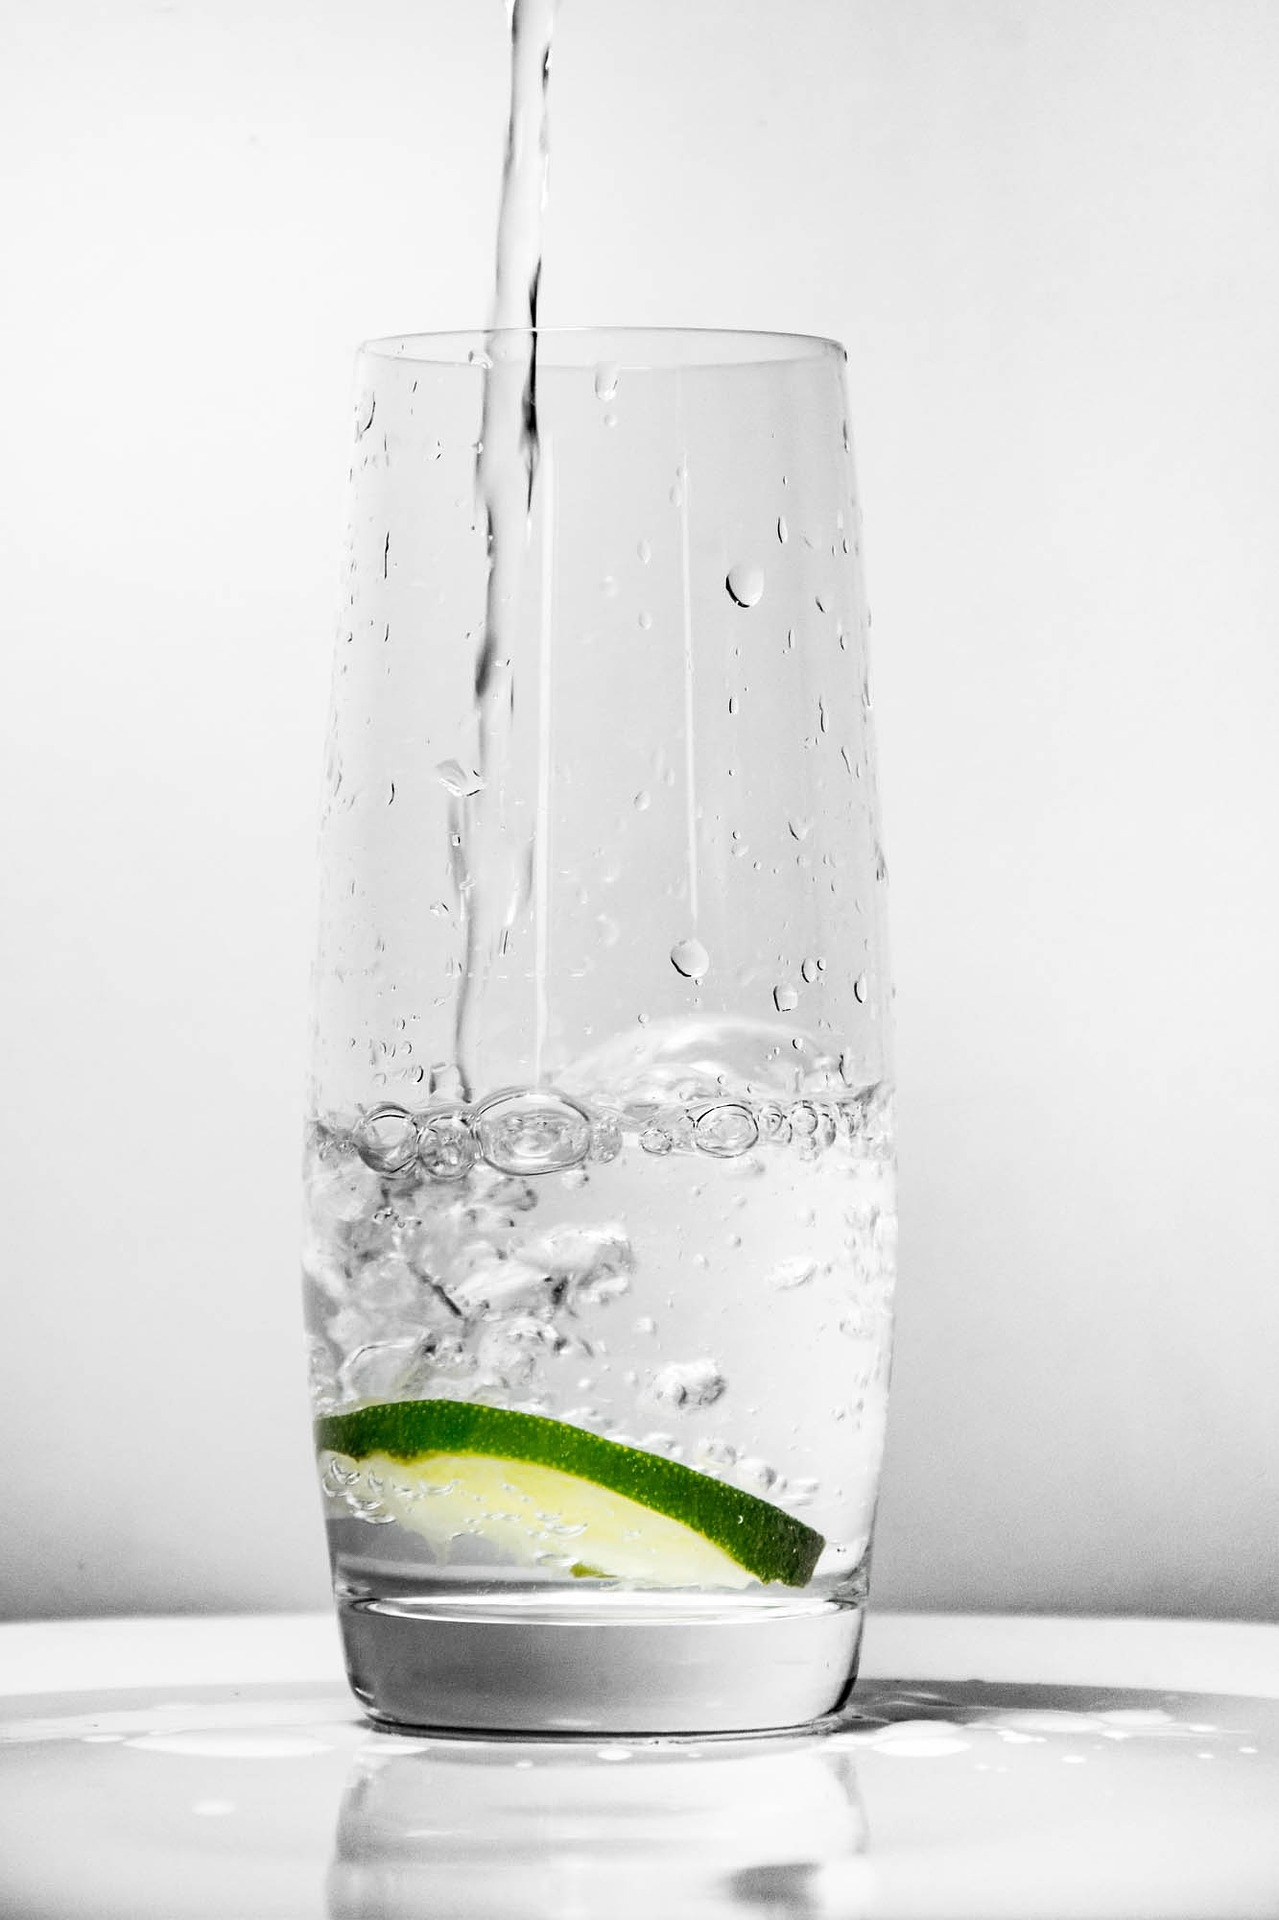 Feed your productivity and creativity. Drink more water